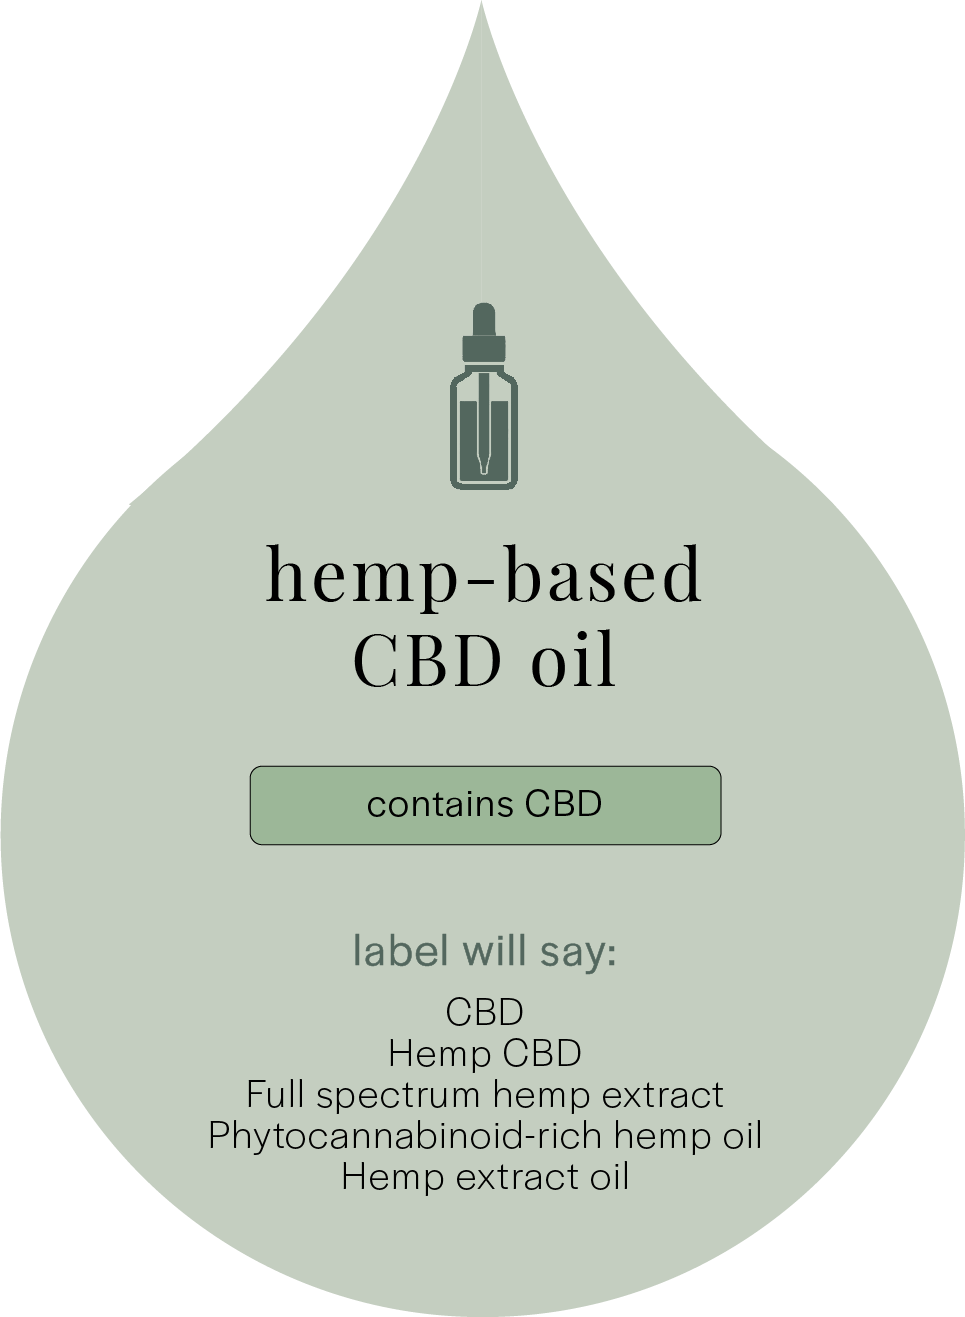 Details About Hemp Based CBD Oil